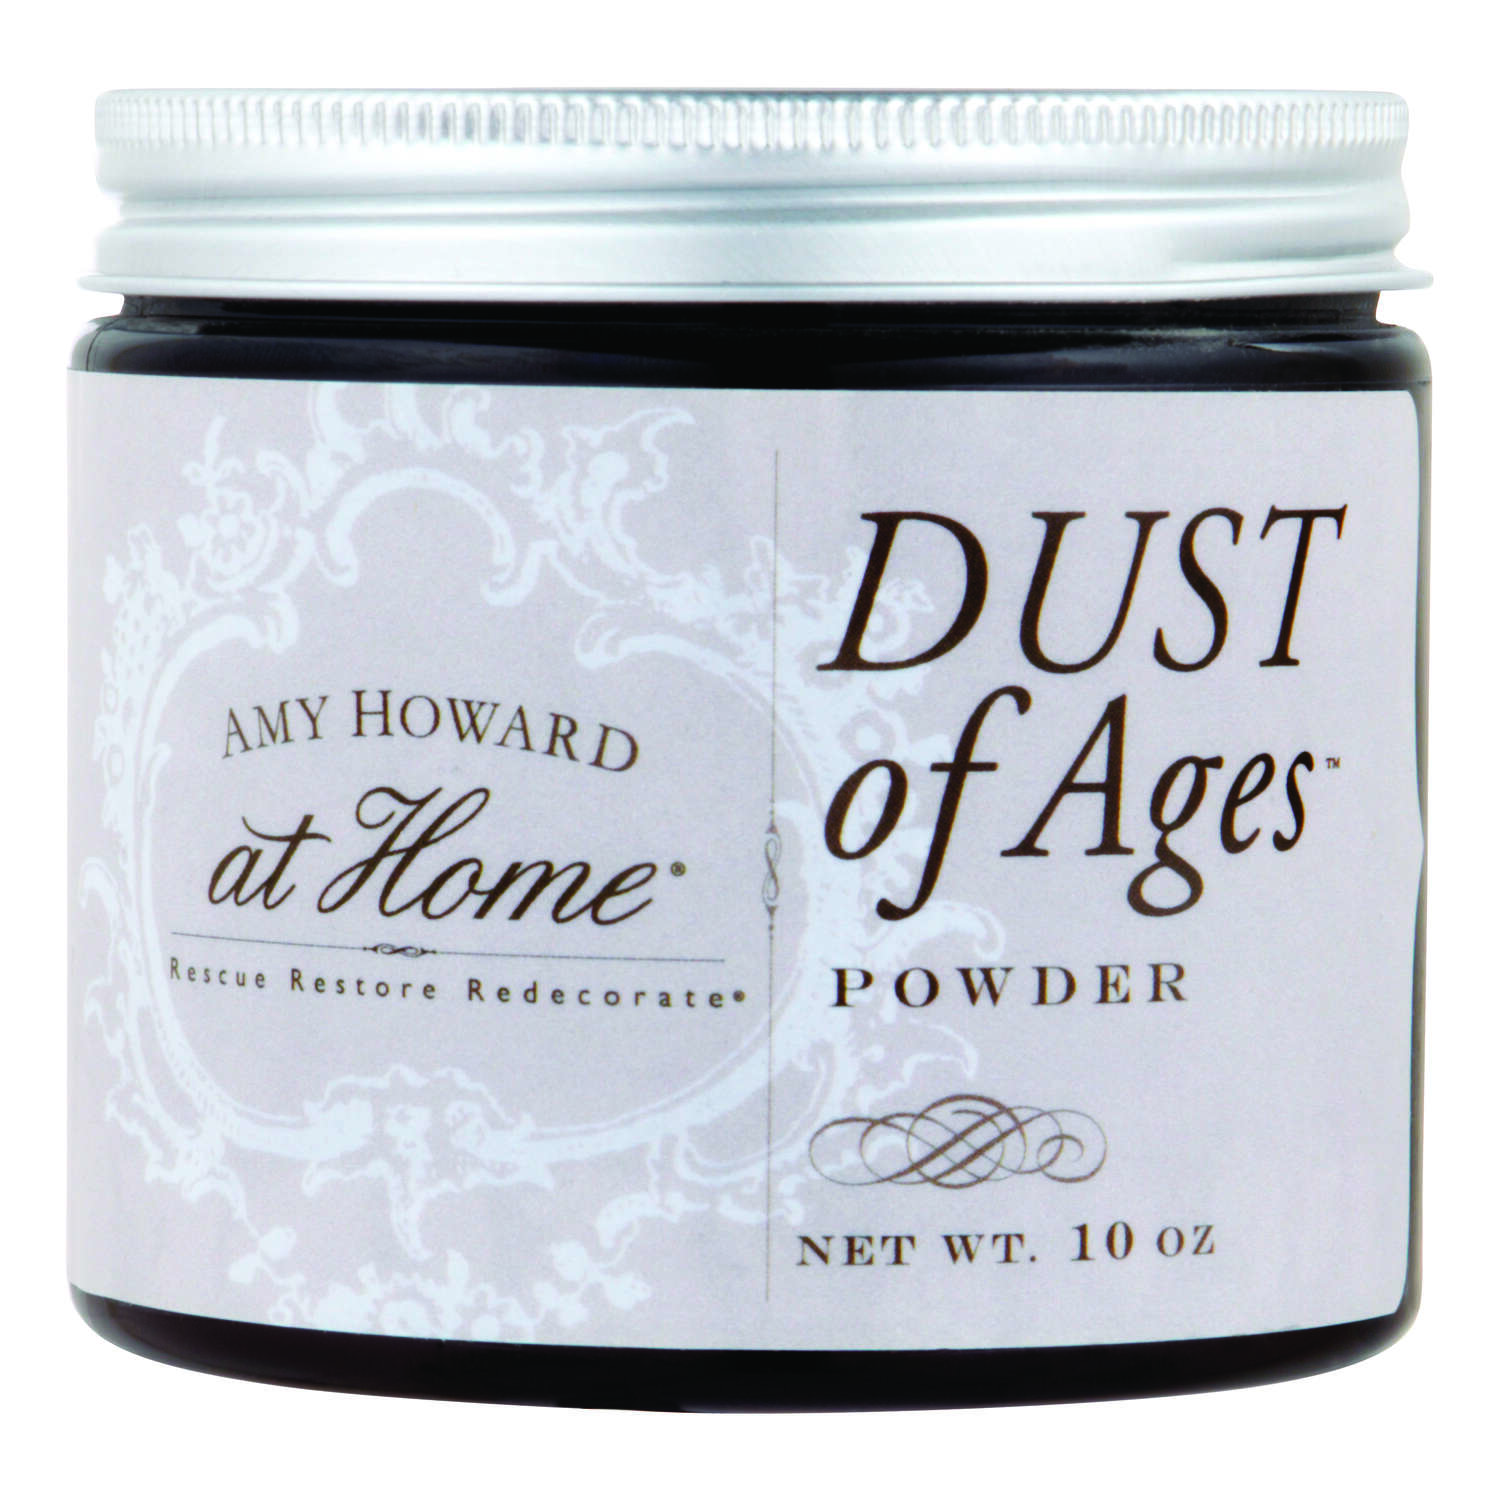 Amy Howard at Home  Dust of Ages Powder  10 oz.